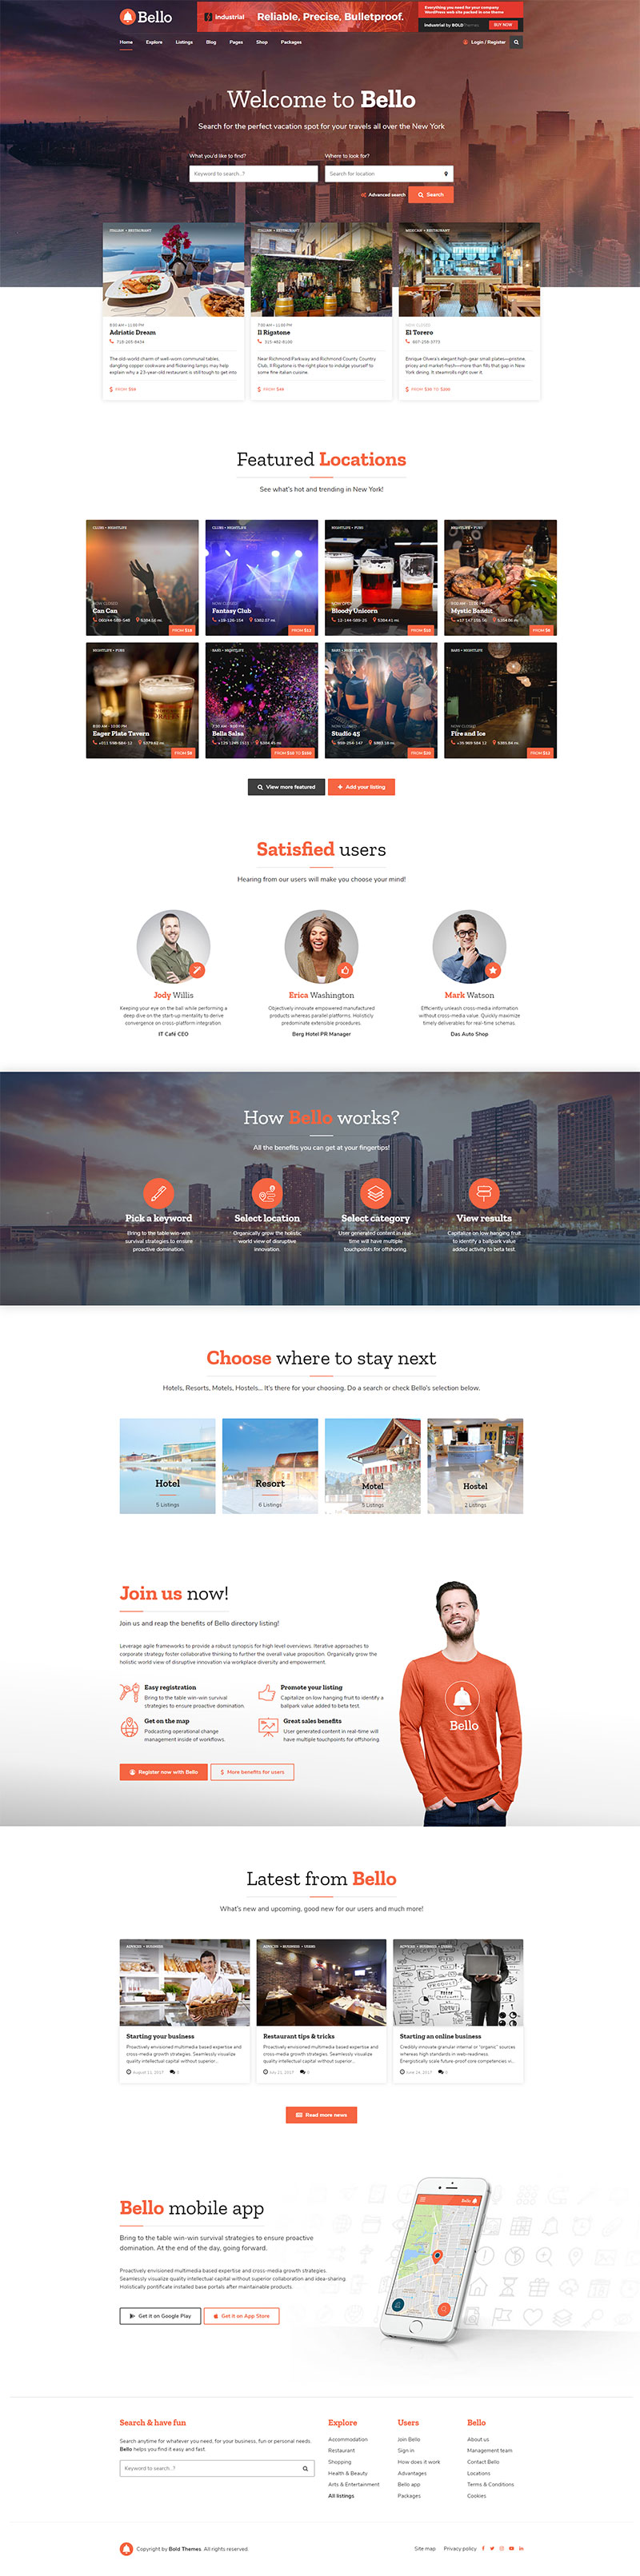 https://bello.bold-themes.com/wp-content/uploads/2018/08/Demo-03-Travel-new.jpg